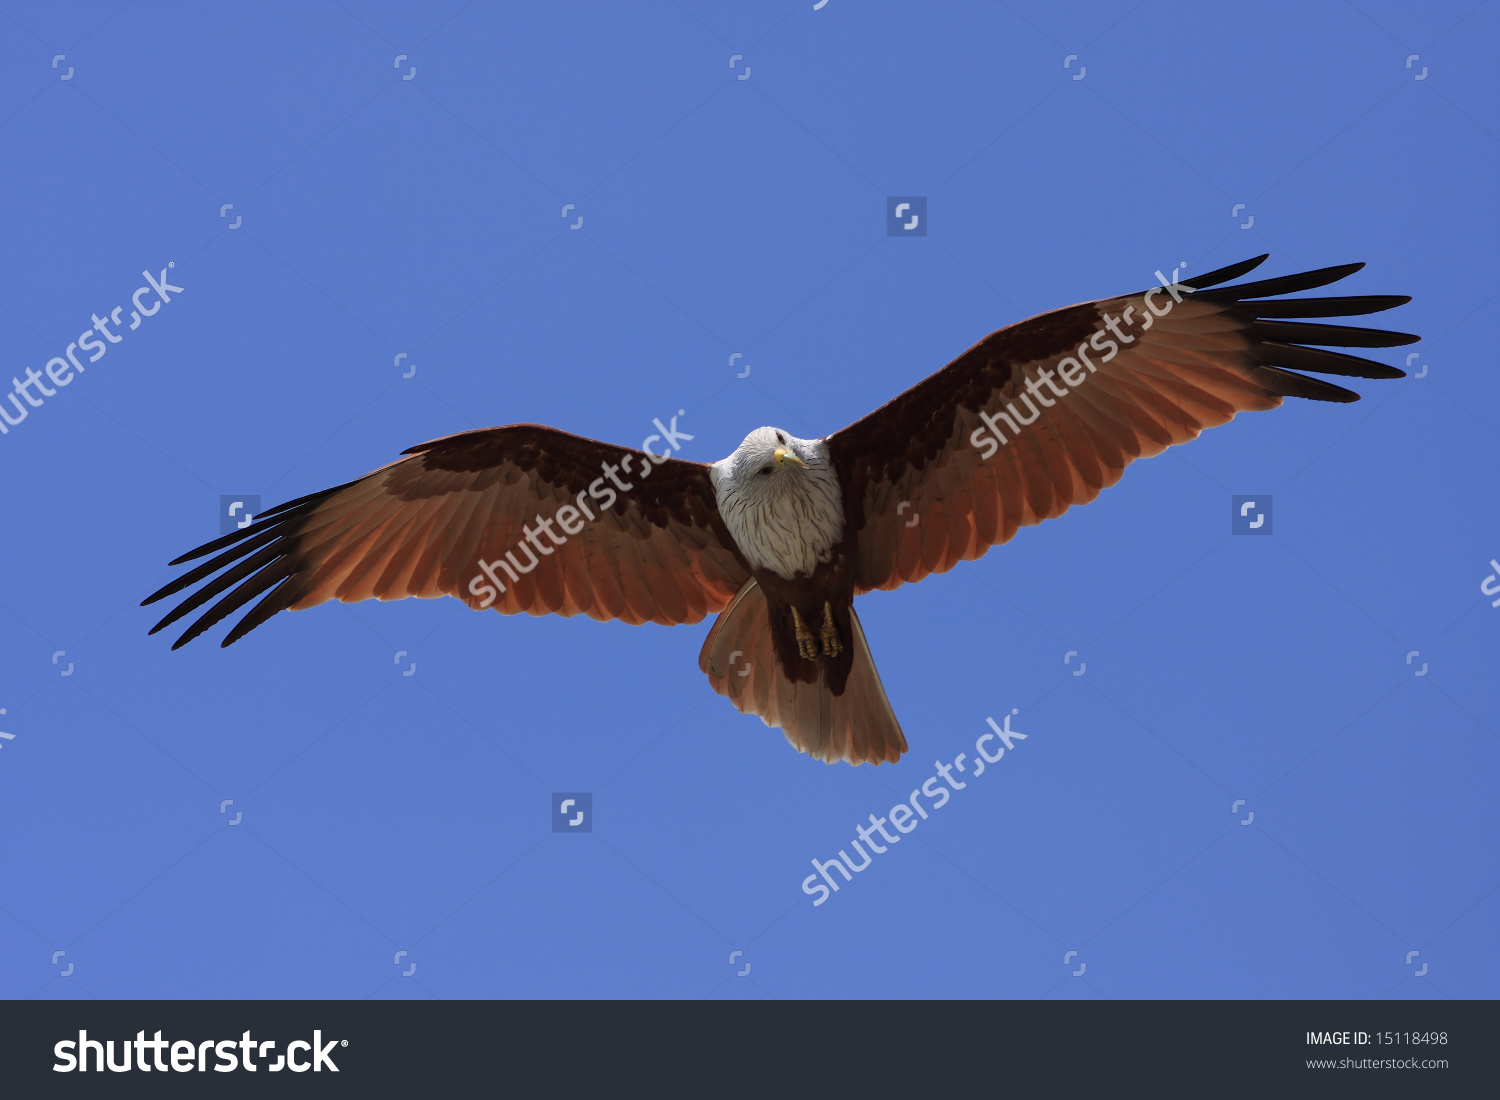 Brahminy Kite clipart #1, Download drawings